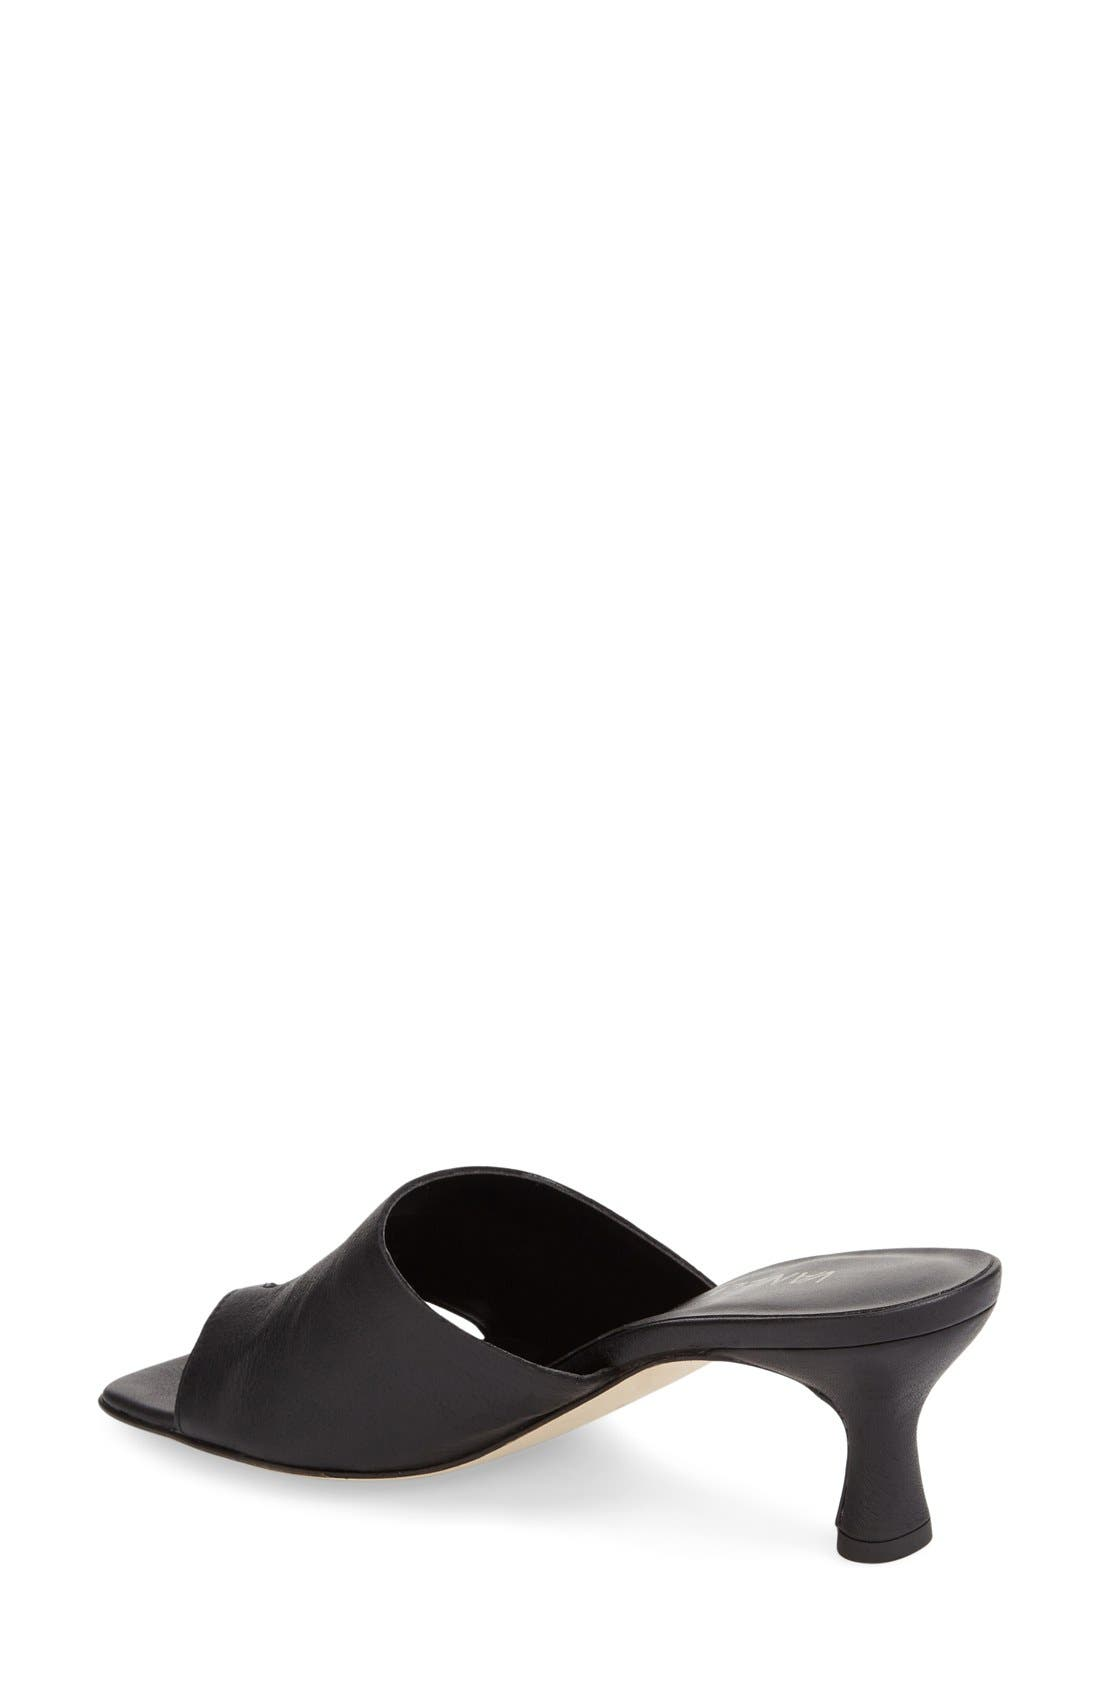 'Melea' Slide Sandal,                             Alternate thumbnail 2, color,                             Black Sweta Calf